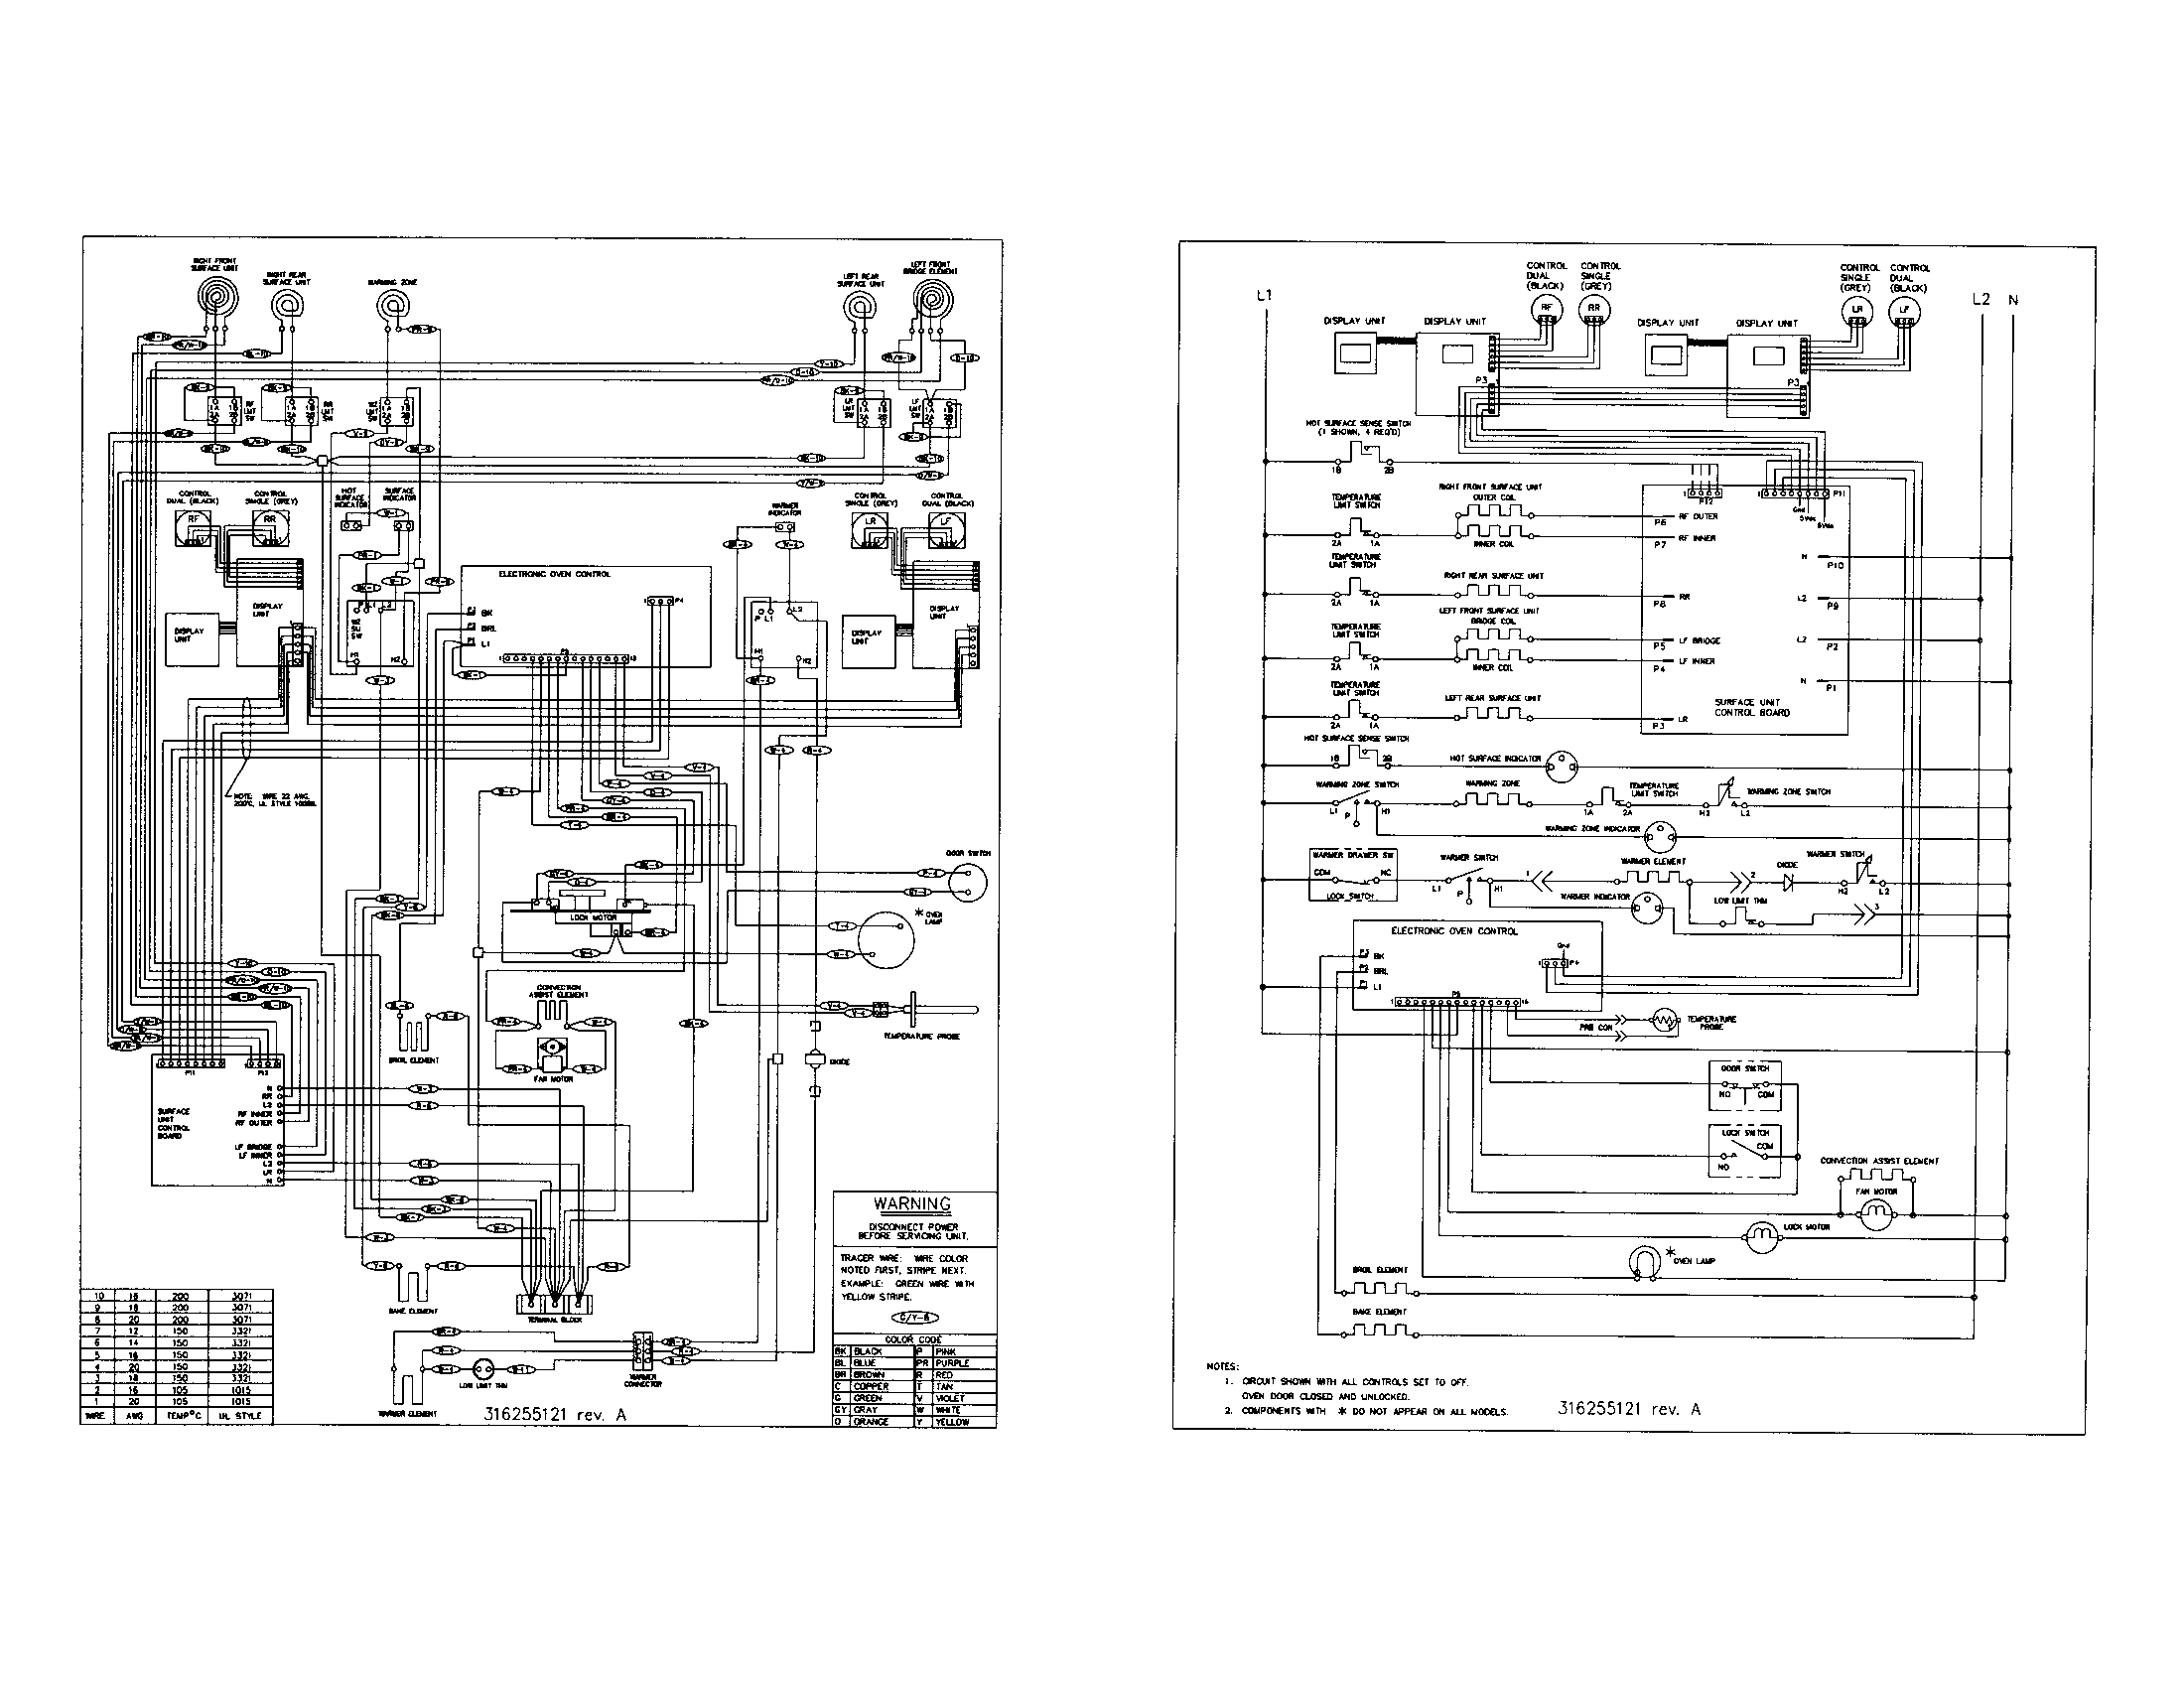 ge stove wiring diagram ge image wiring diagram ge electric stove wiring diagrams ge wiring diagrams on ge stove wiring diagram